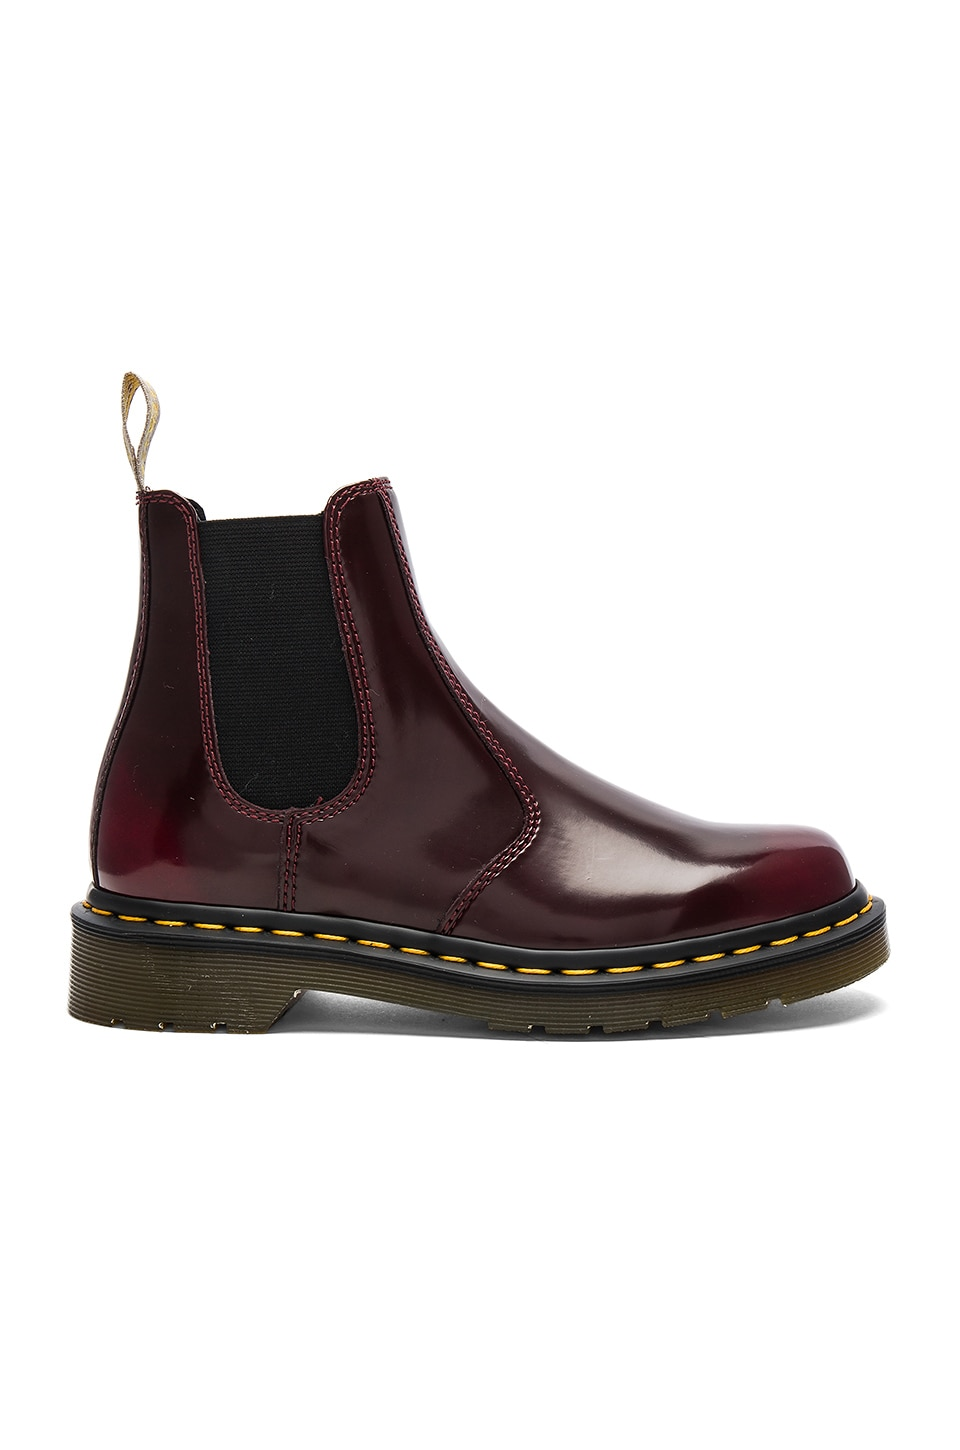 Dr. Martens Chelsea Boot in Cherry Red